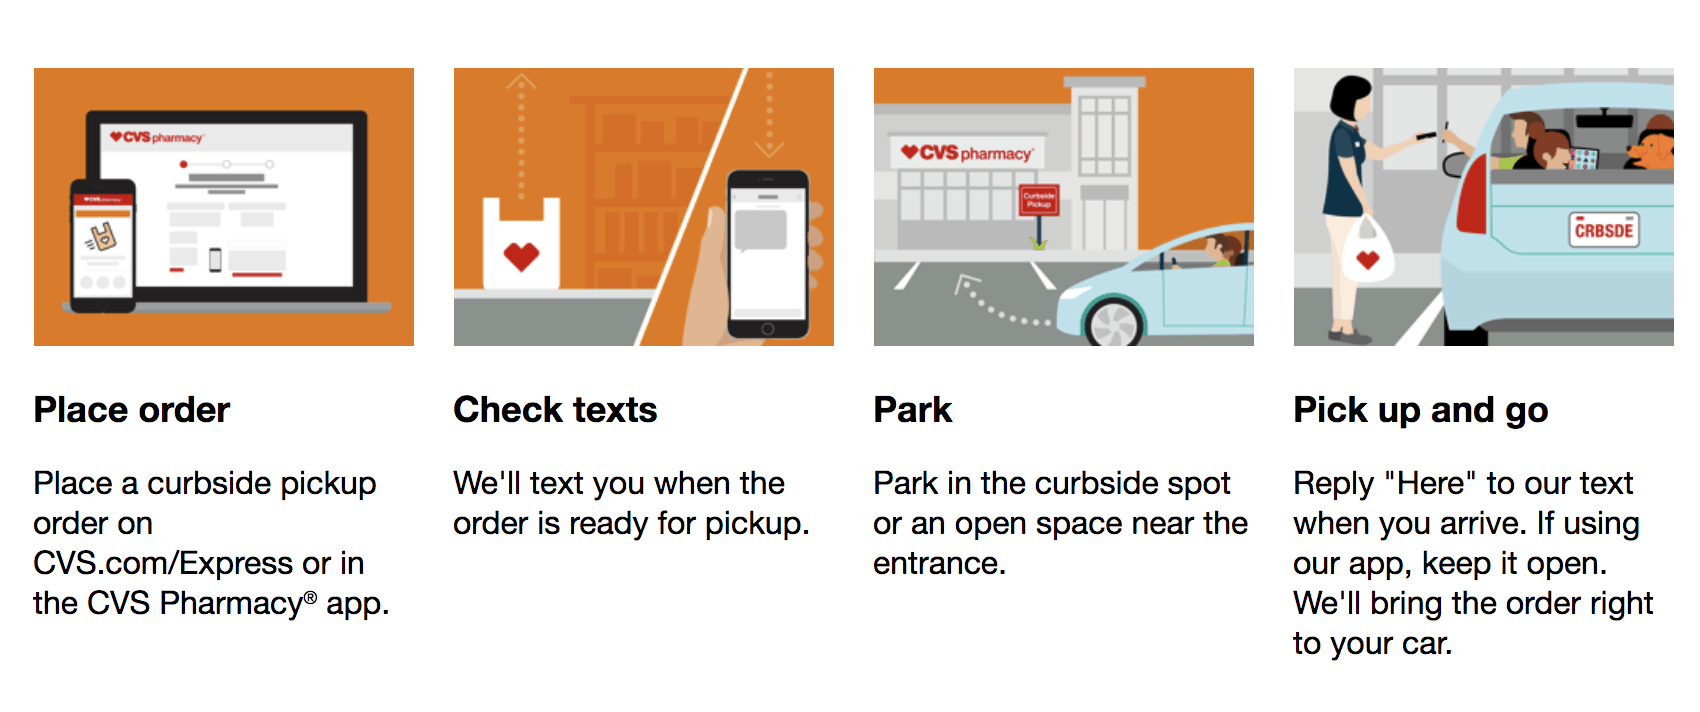 CVS Curbside Pickup: Changing The Way Your Shop - Lady and the Blog